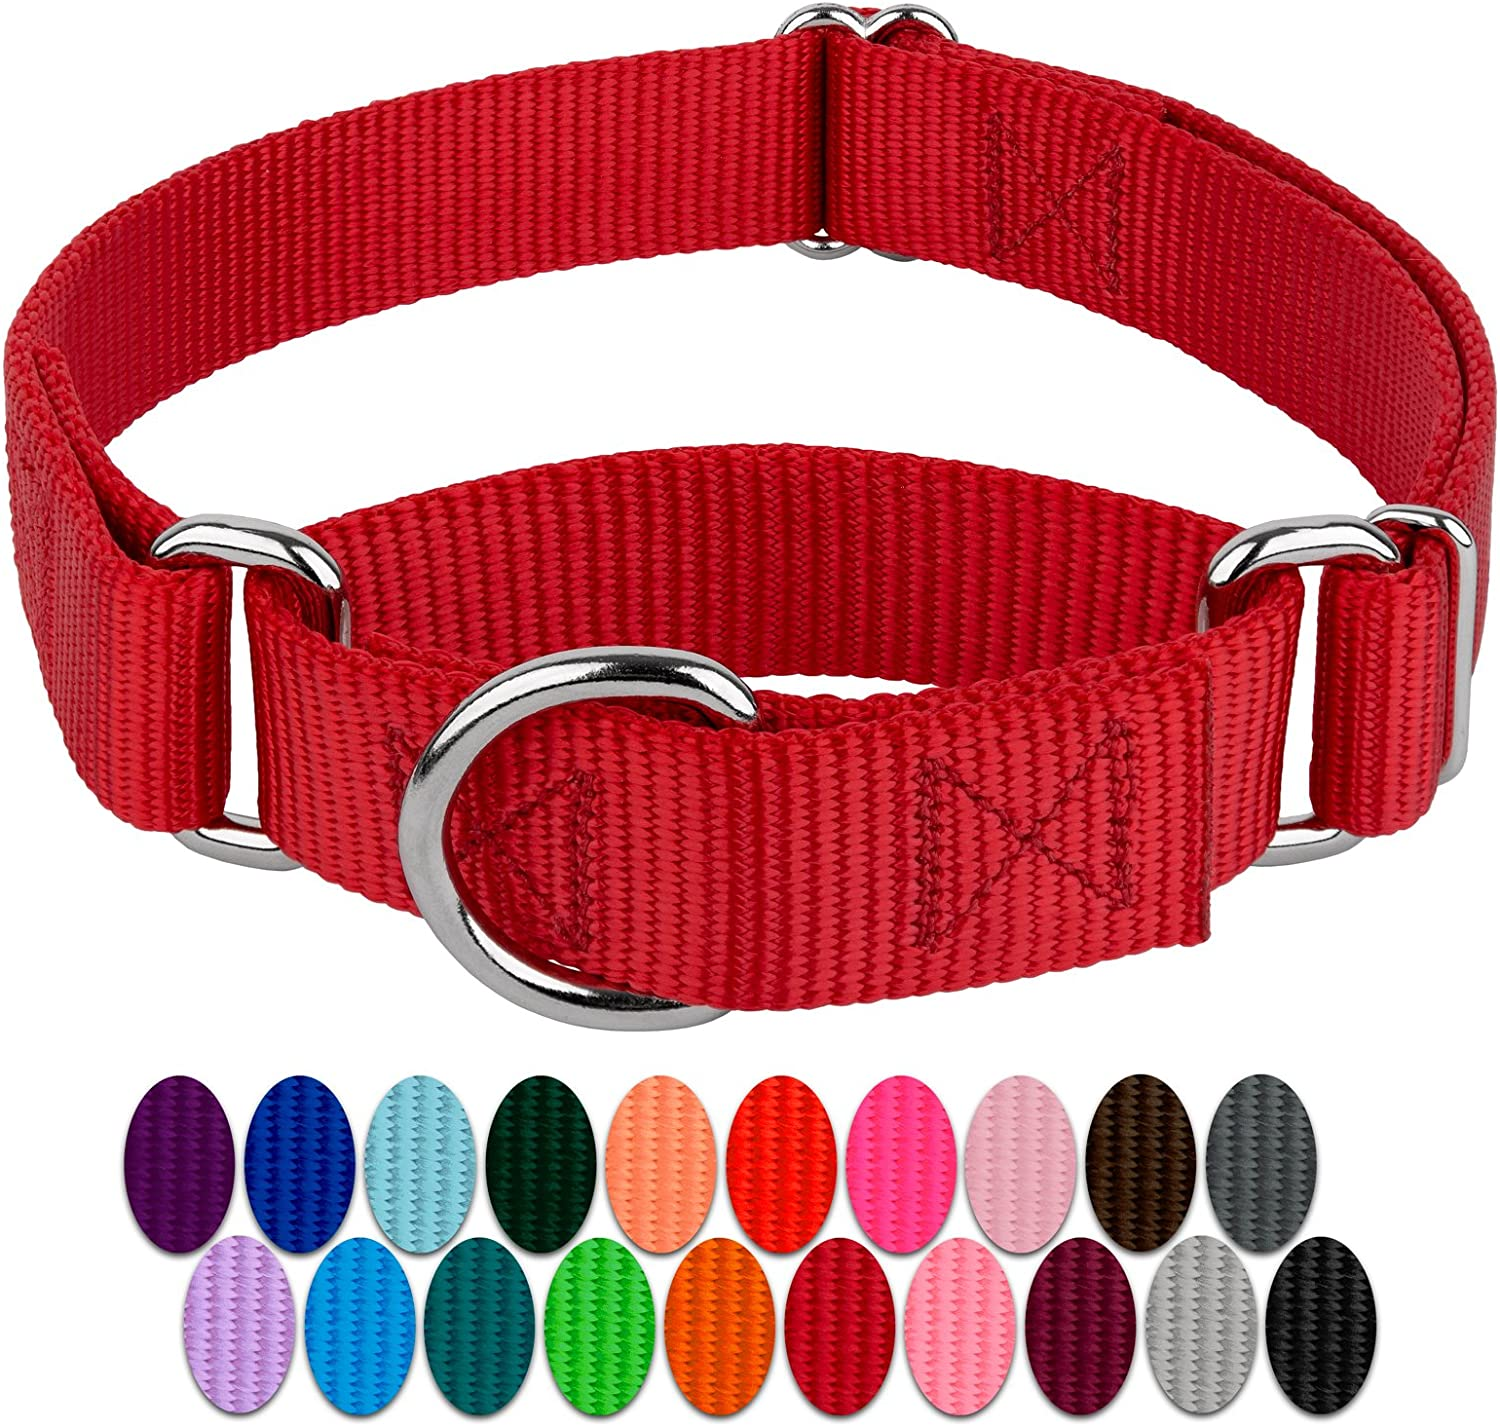 Martingale Collar Sample